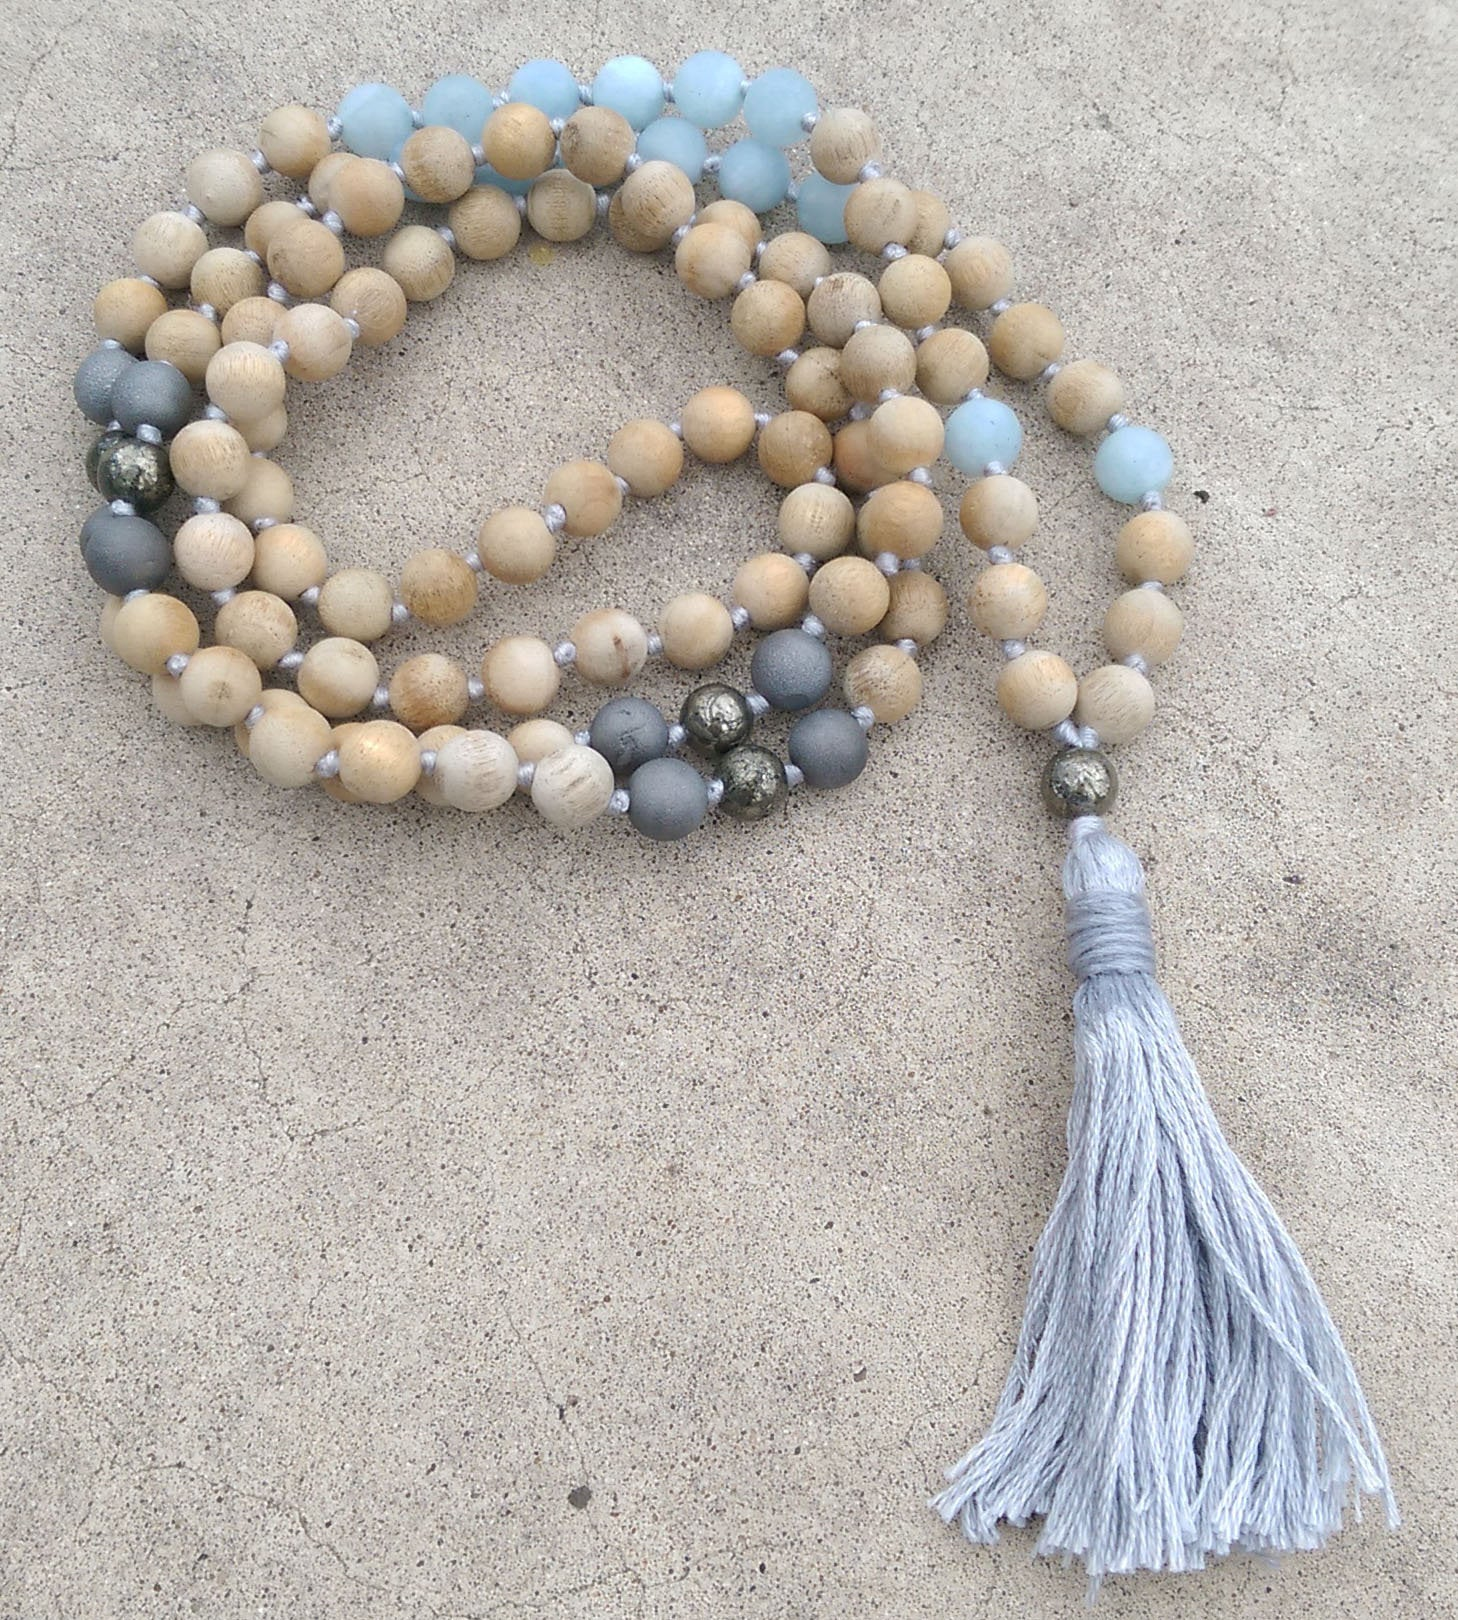 Eco Collection 8mm Sandalwood Matte aquamarine Pyrite Agate Traditional Cotton Knotted 108 Meditation Mala Necklace Chakra Yoga Jewelry